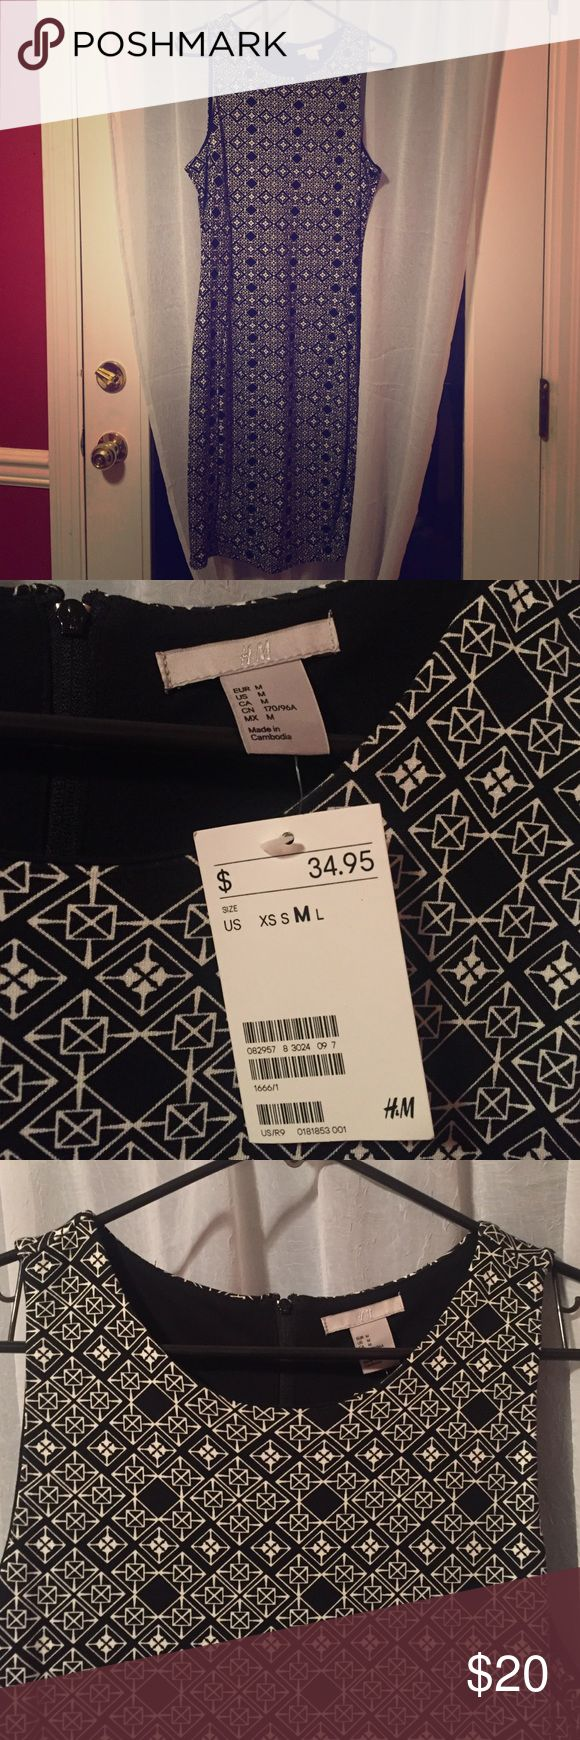 New w/ Tags Geometric Pattern Bodycon Dress Never worn black and white geometric pattern dress. Slightly longer cut than your typical bodycon dress, hits at or below the knee. Zipper in the back, high neck. You can dress it up or down! Viscose, polyester, and elastane. H&M Dresses Midi